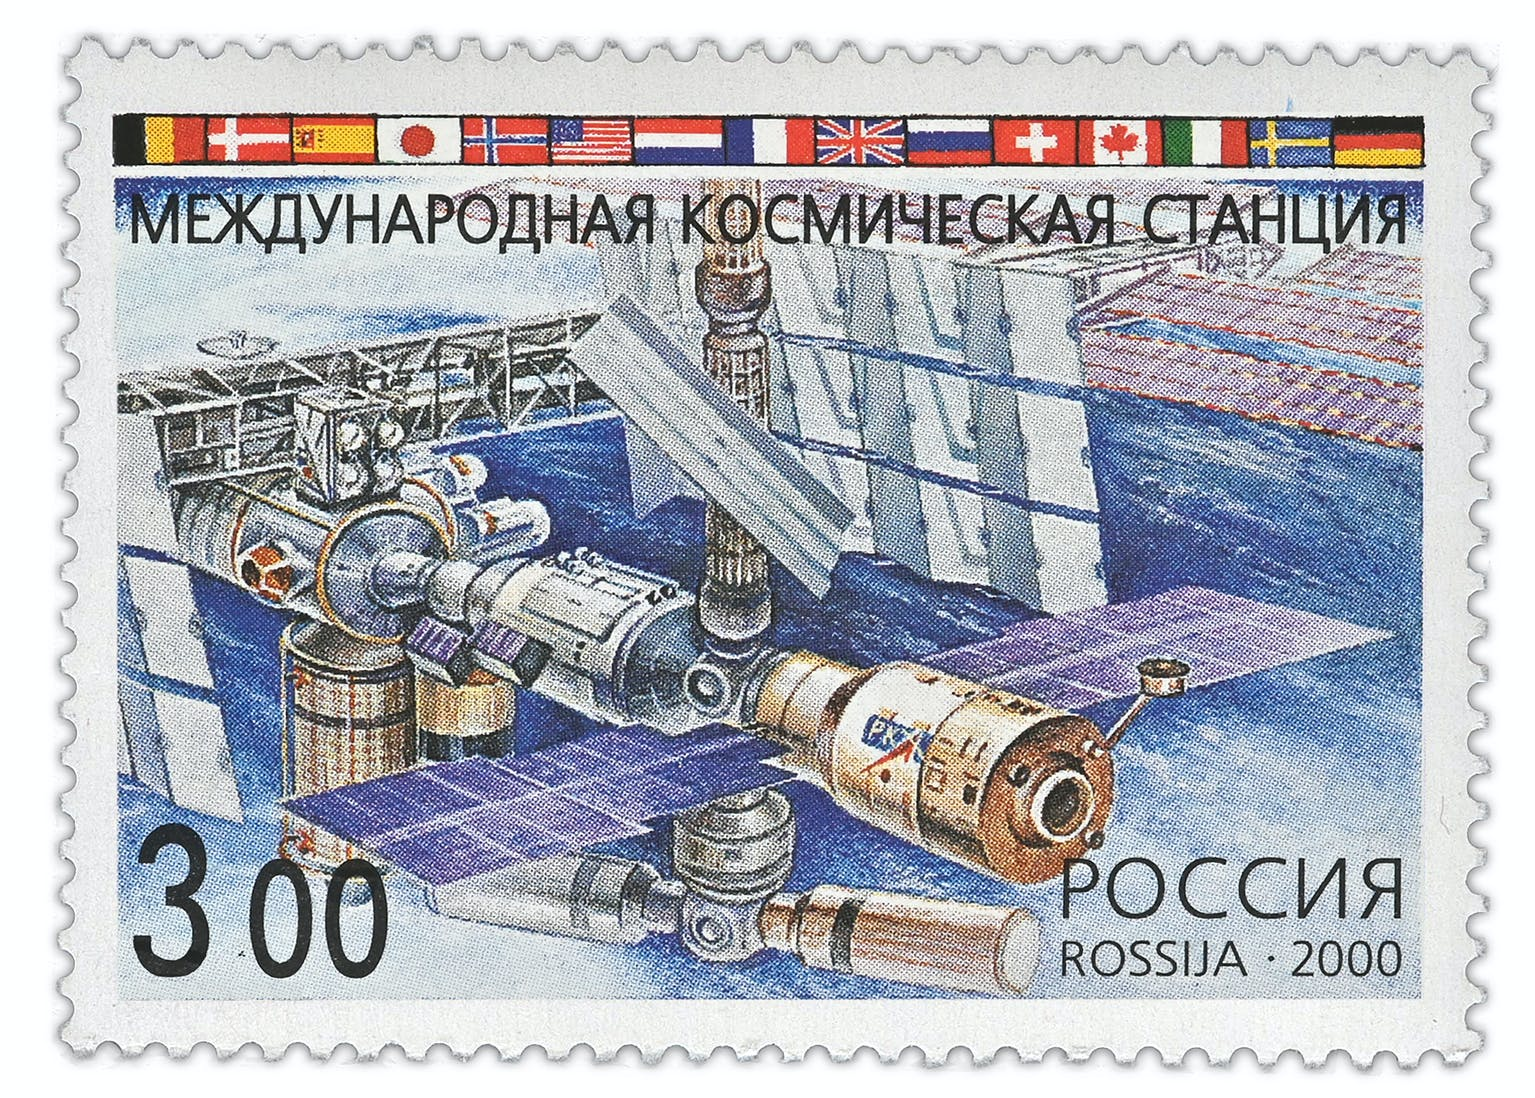 Russische Briefmarke zur Internationalen Raumstation ISS aus dem Jahr 2000